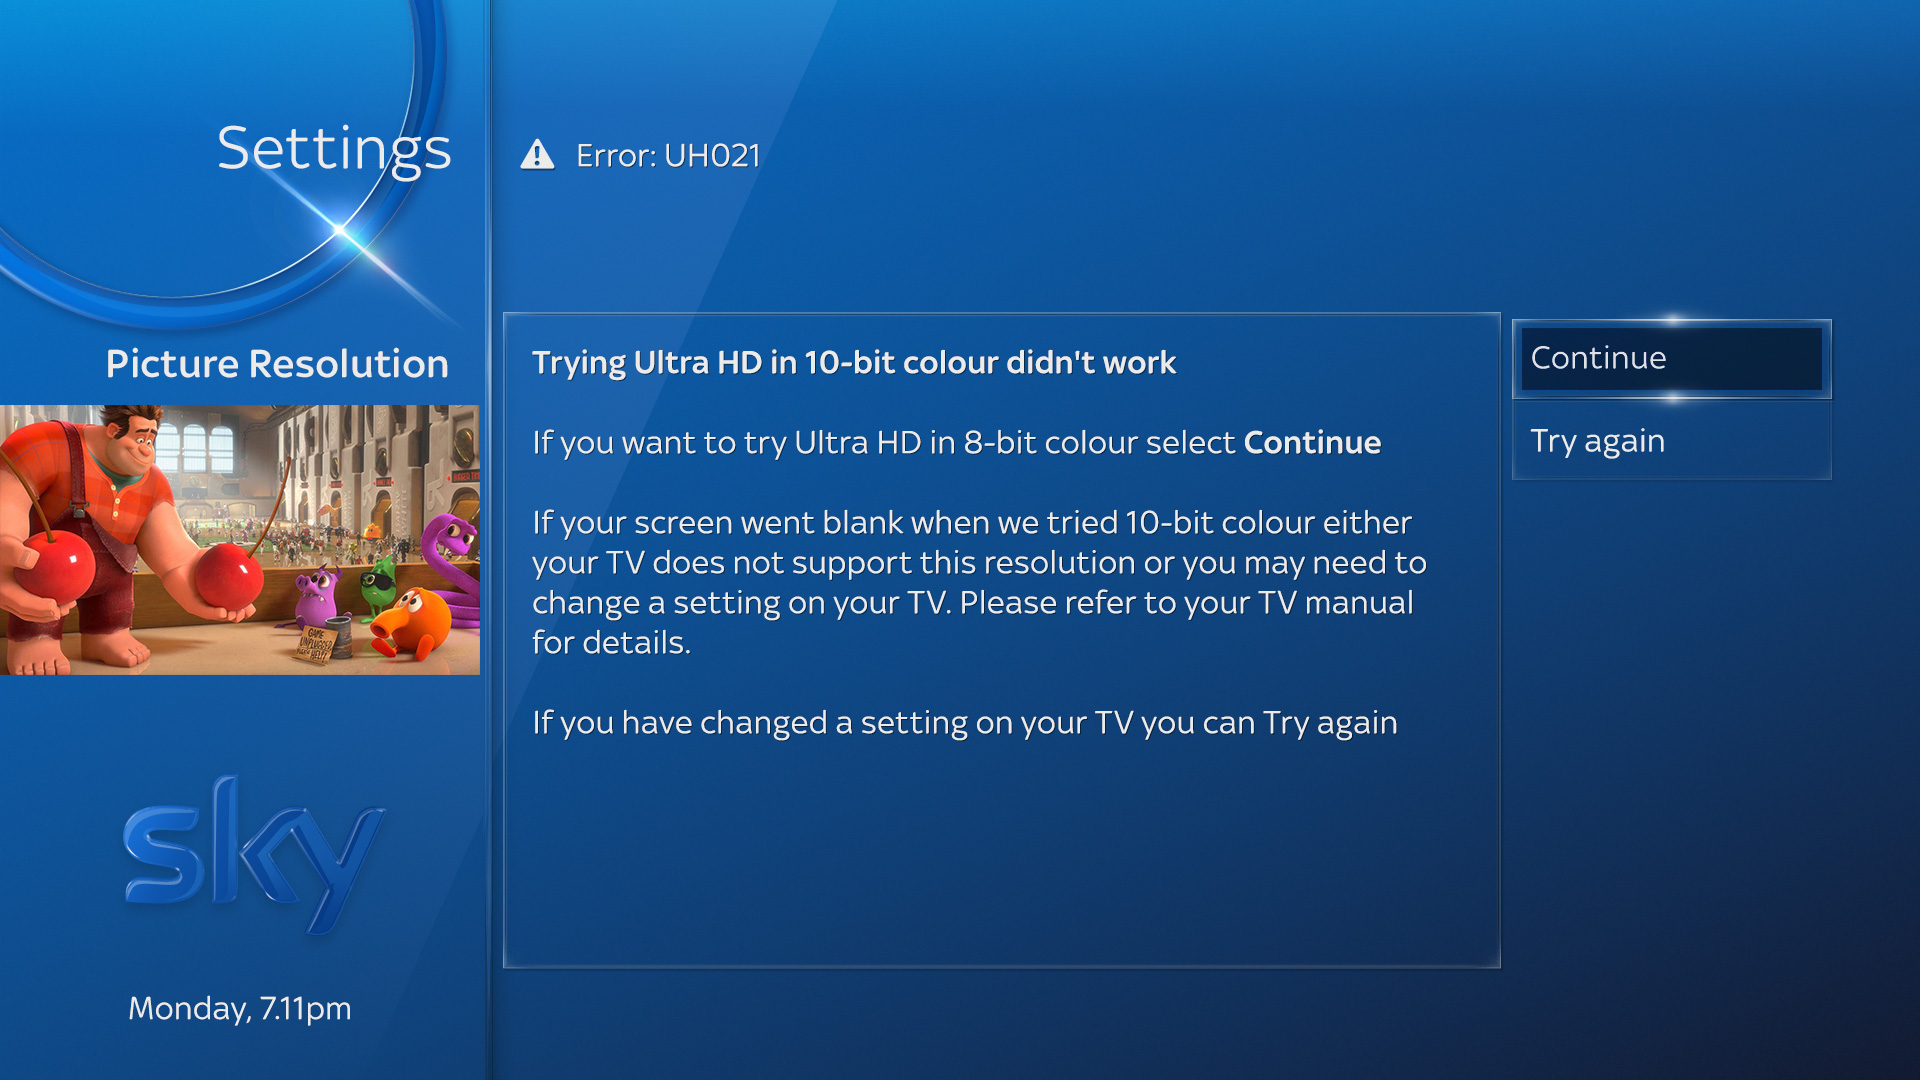 Trying Ultra HD in 10-bit colour didn't work error message